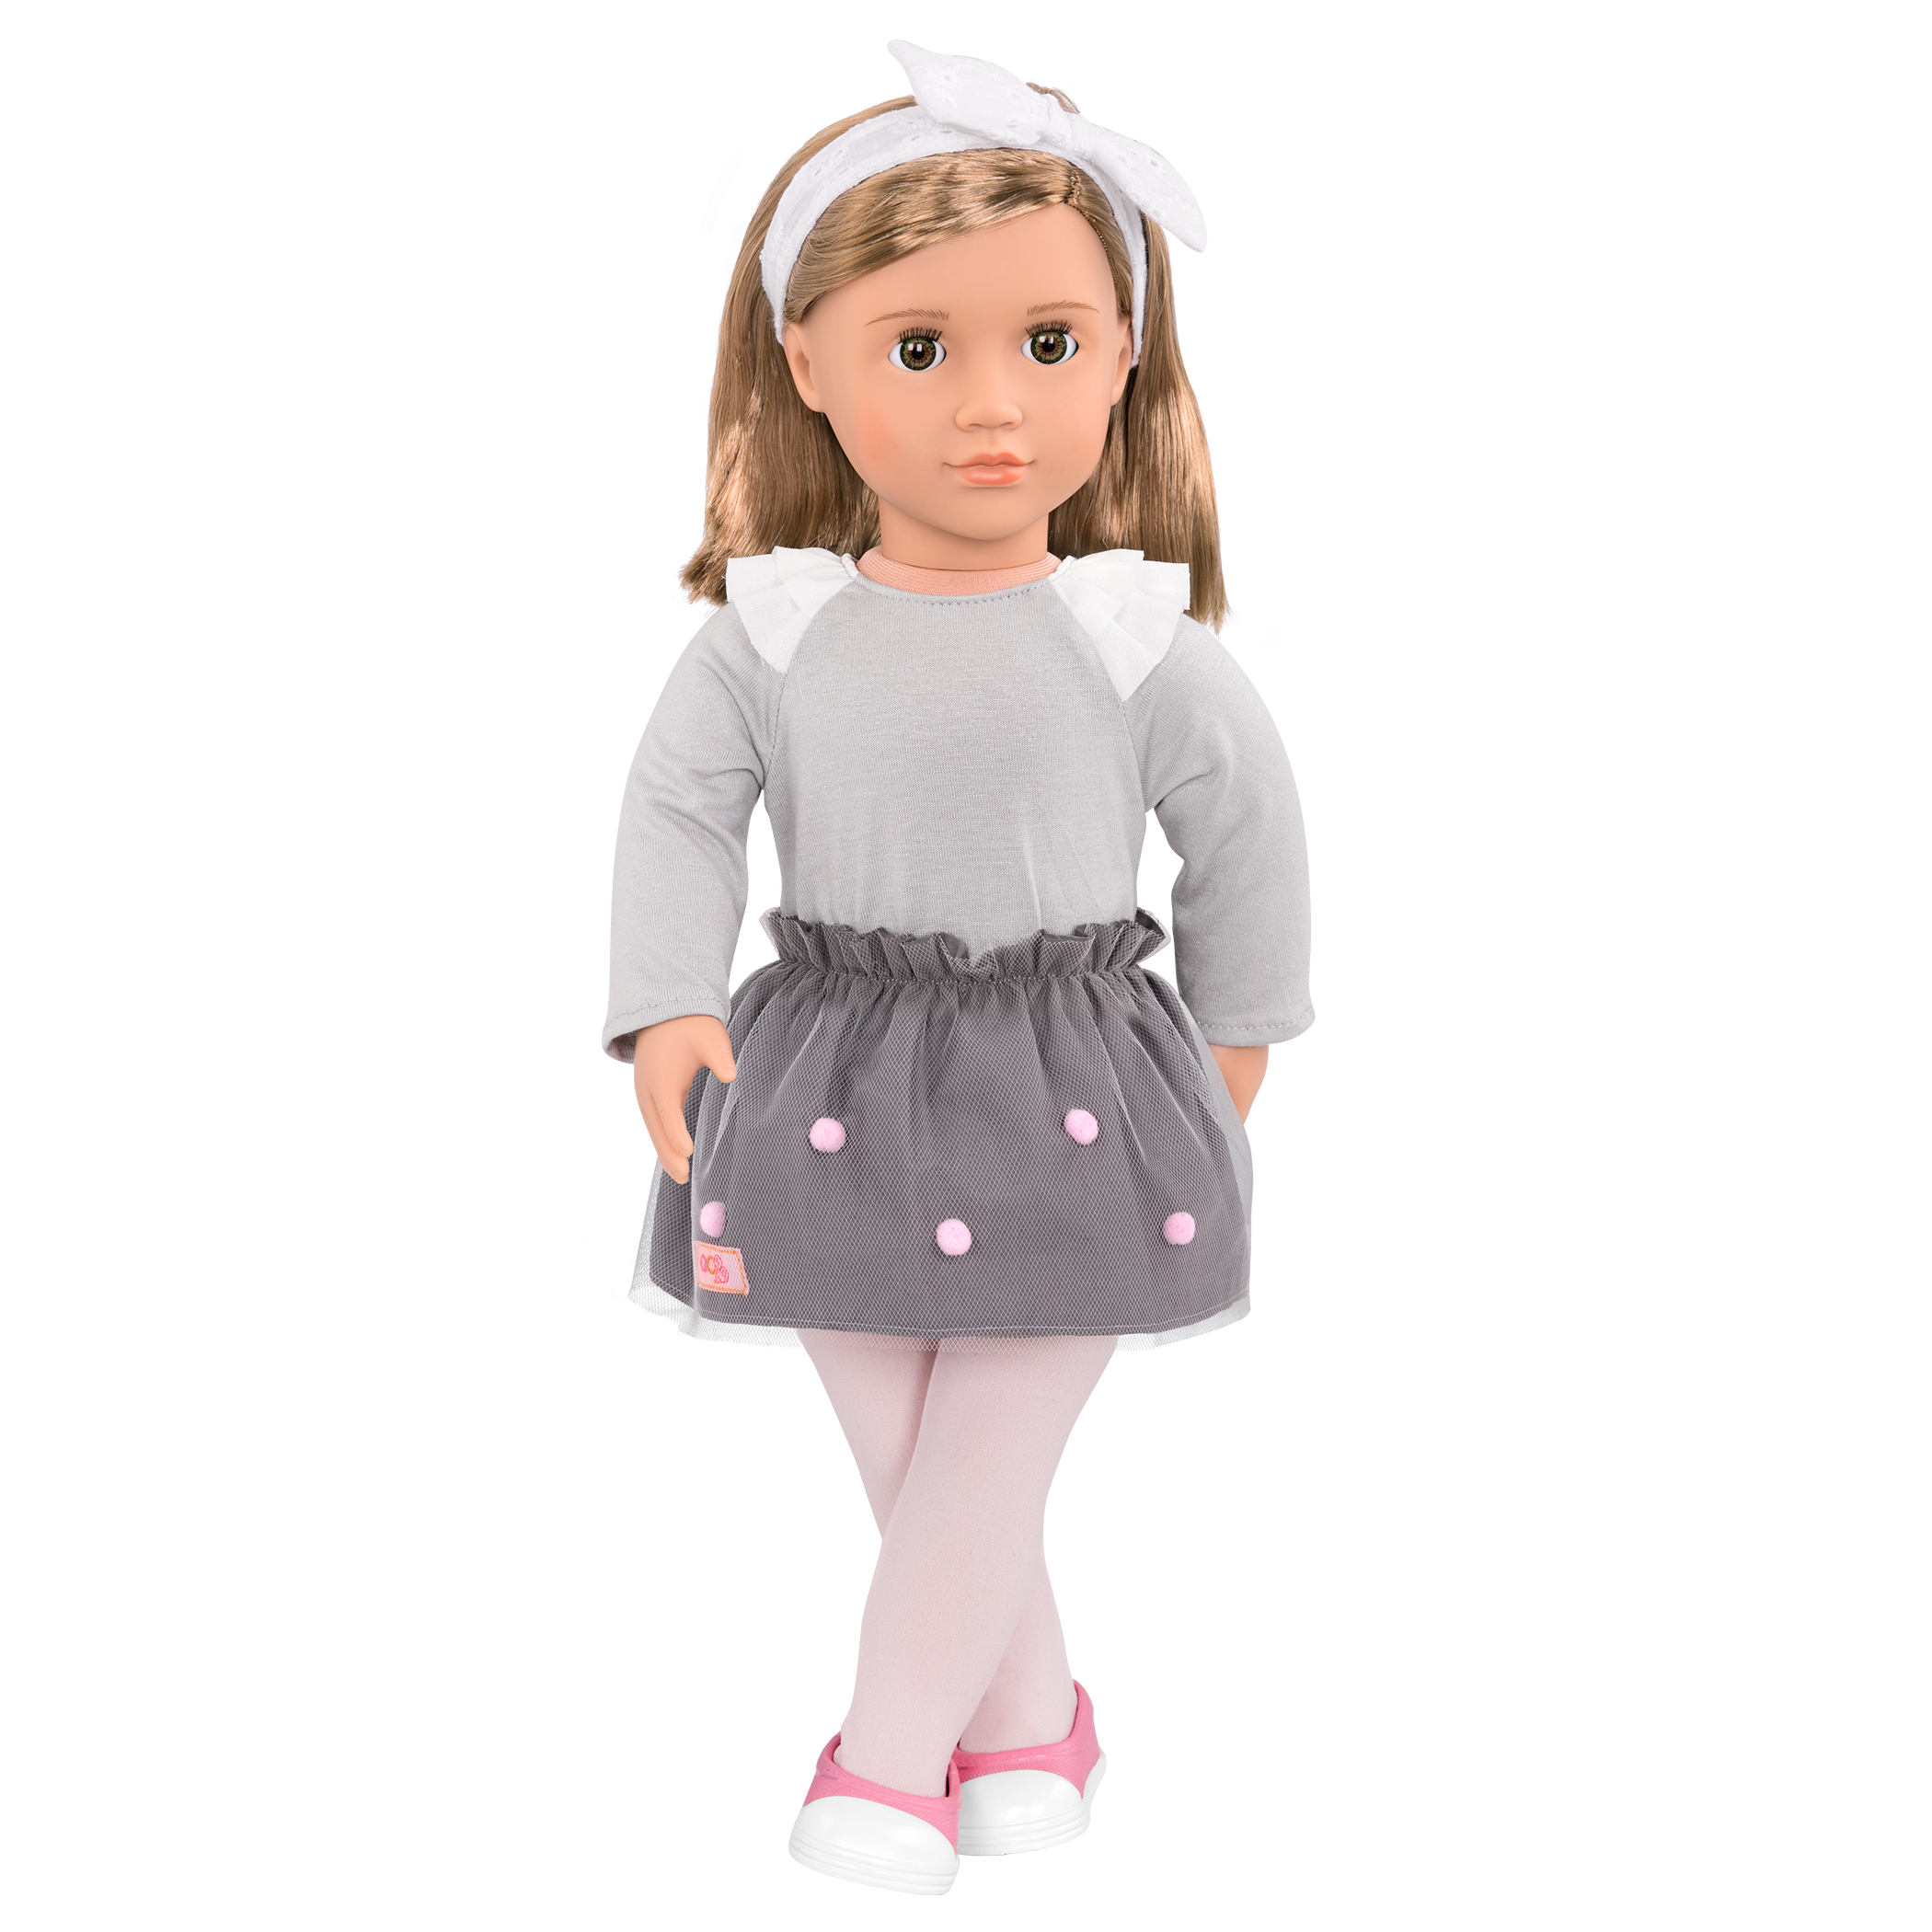 Bina 18-inch Doll with legs crossed